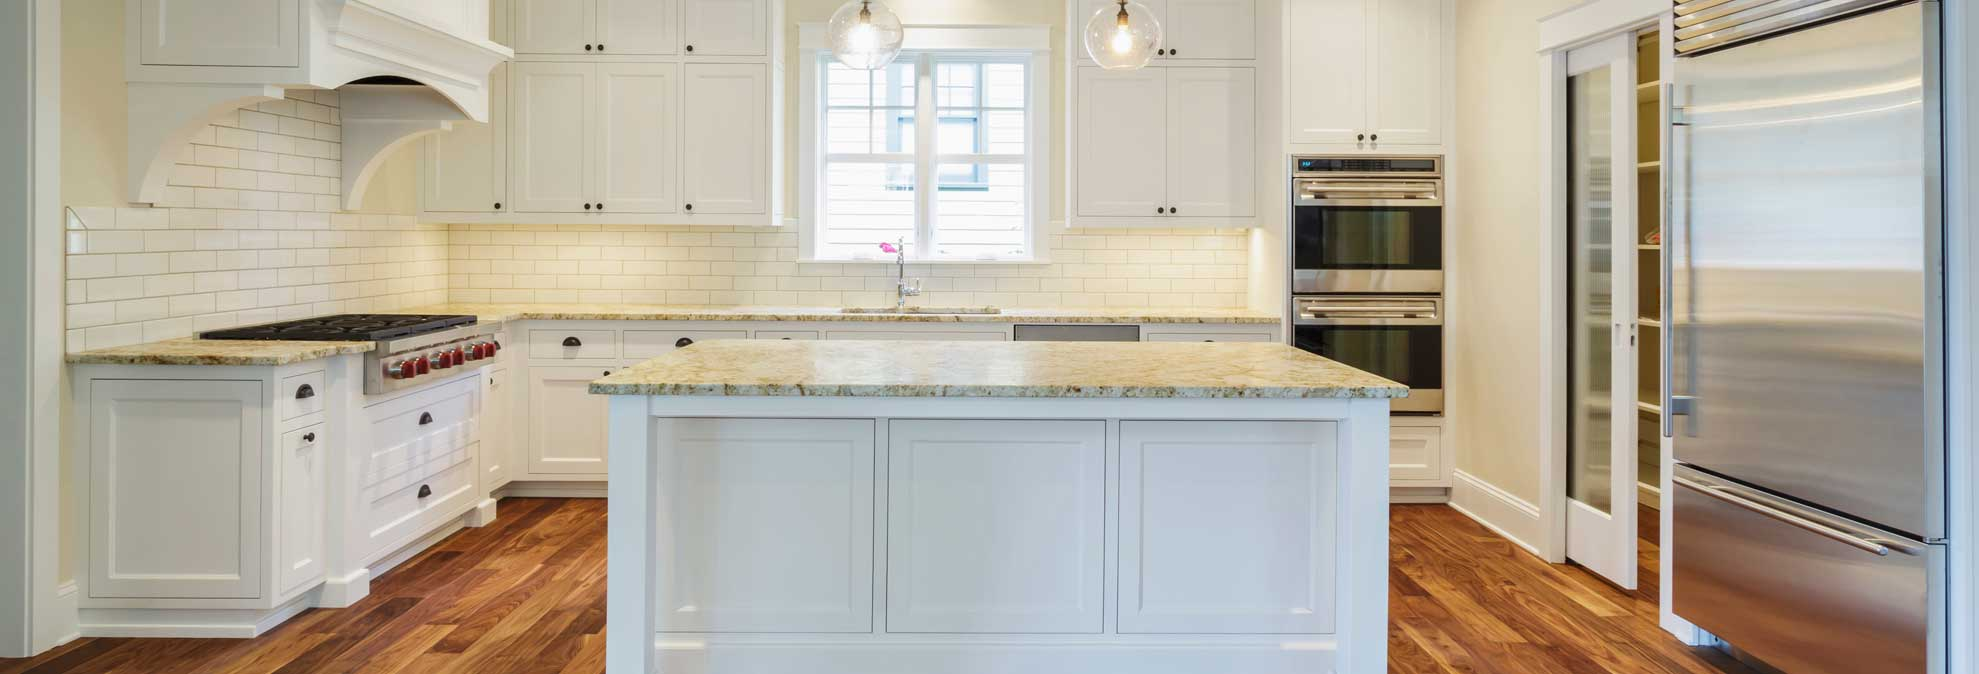 Kitchen Remodel Mistakes That Will Bust Your Budget